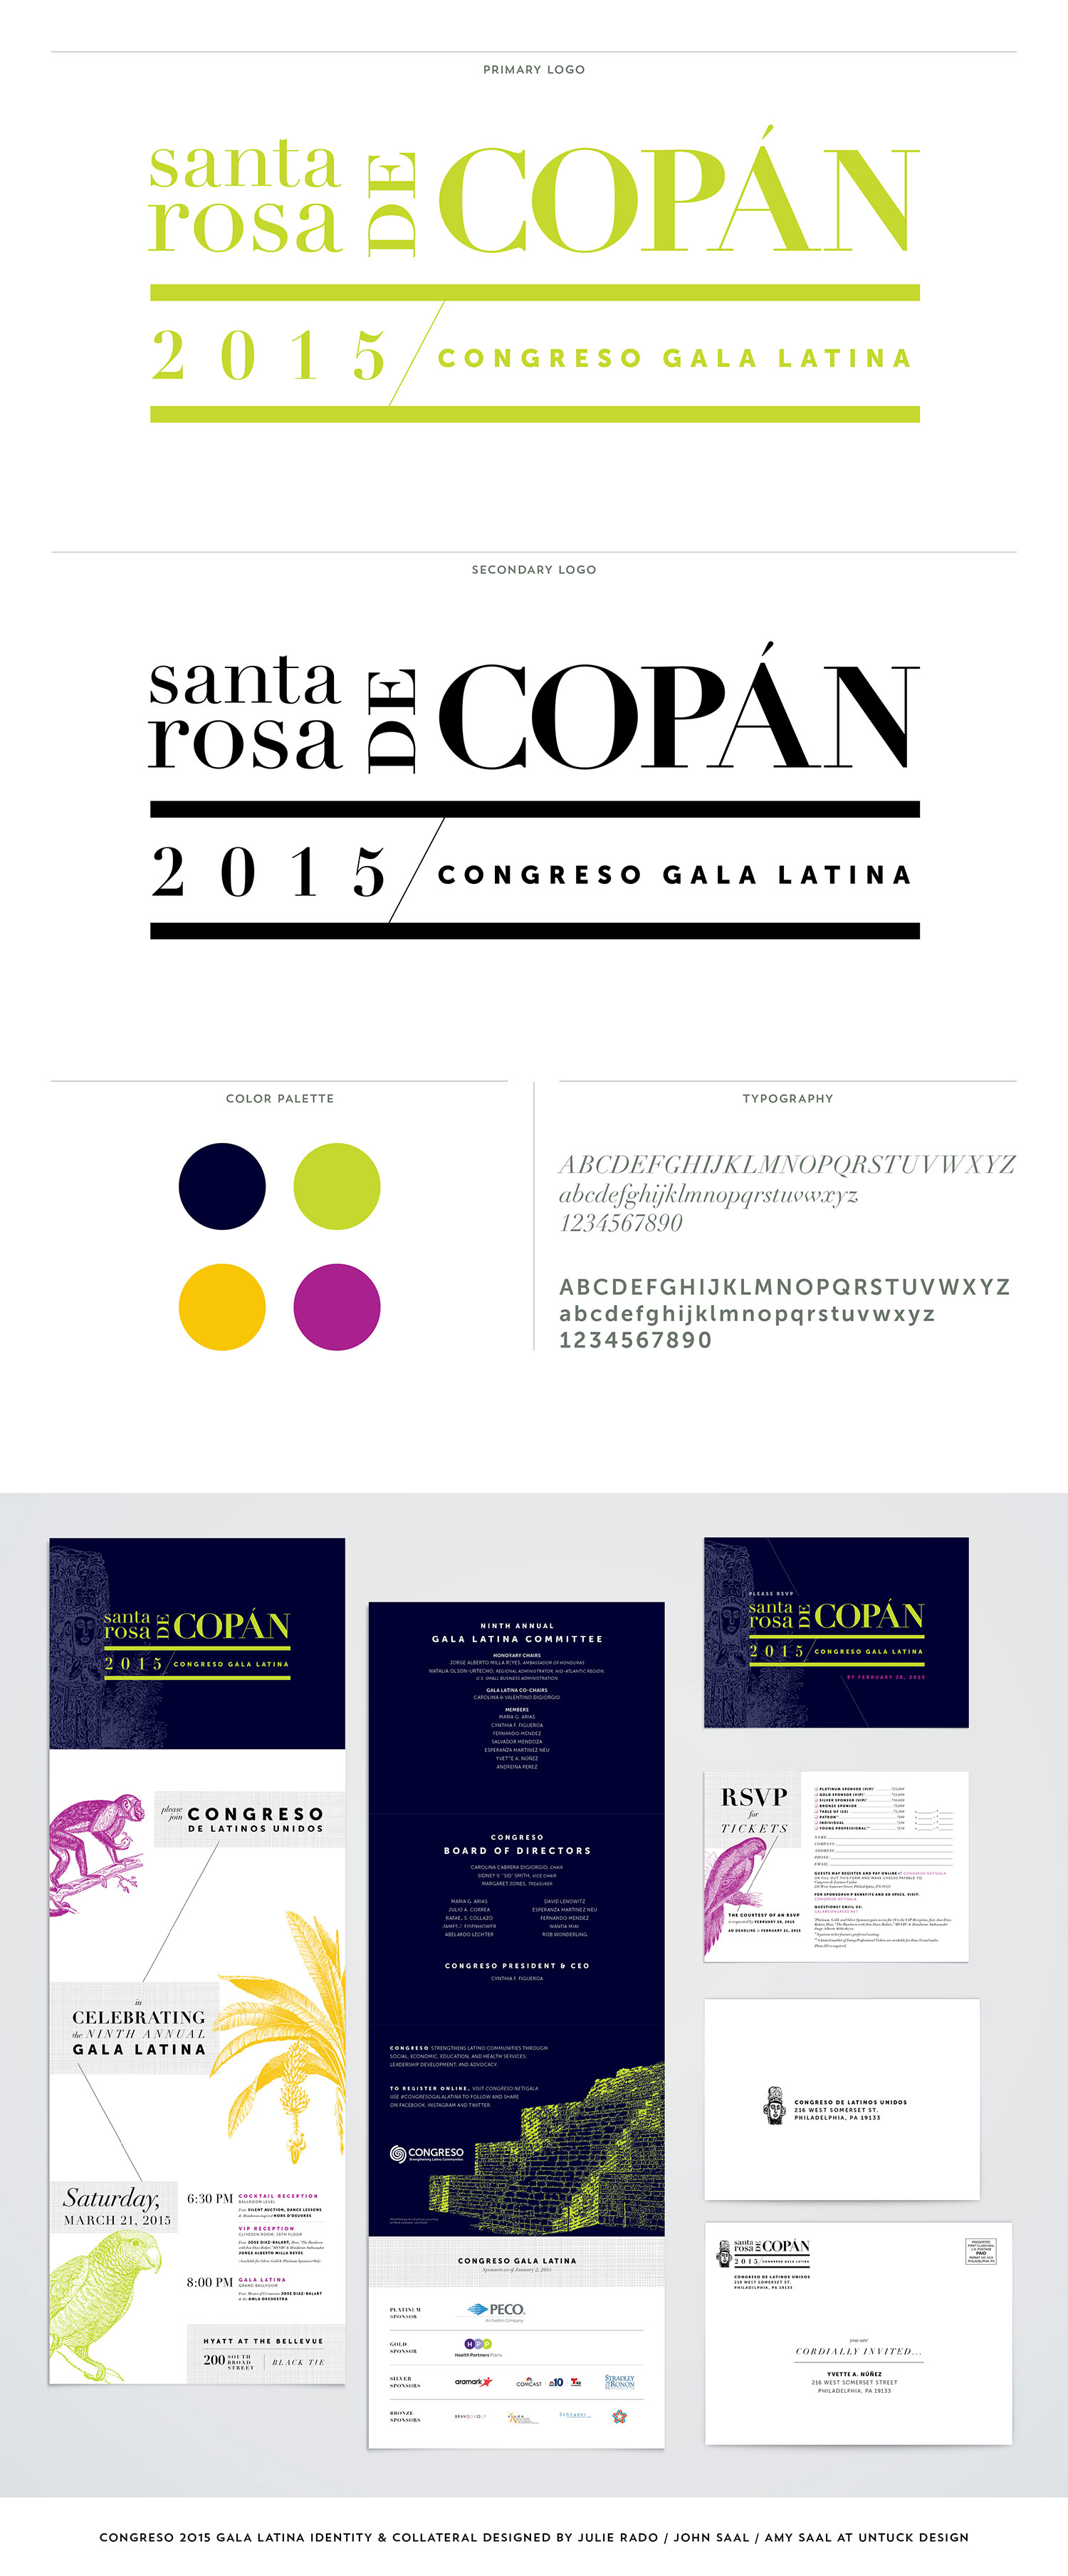 Congreso 2015 Gala Latina Identity & Collateral designed by Julie Rado / John Saal / Amy Saal at Untuck Design